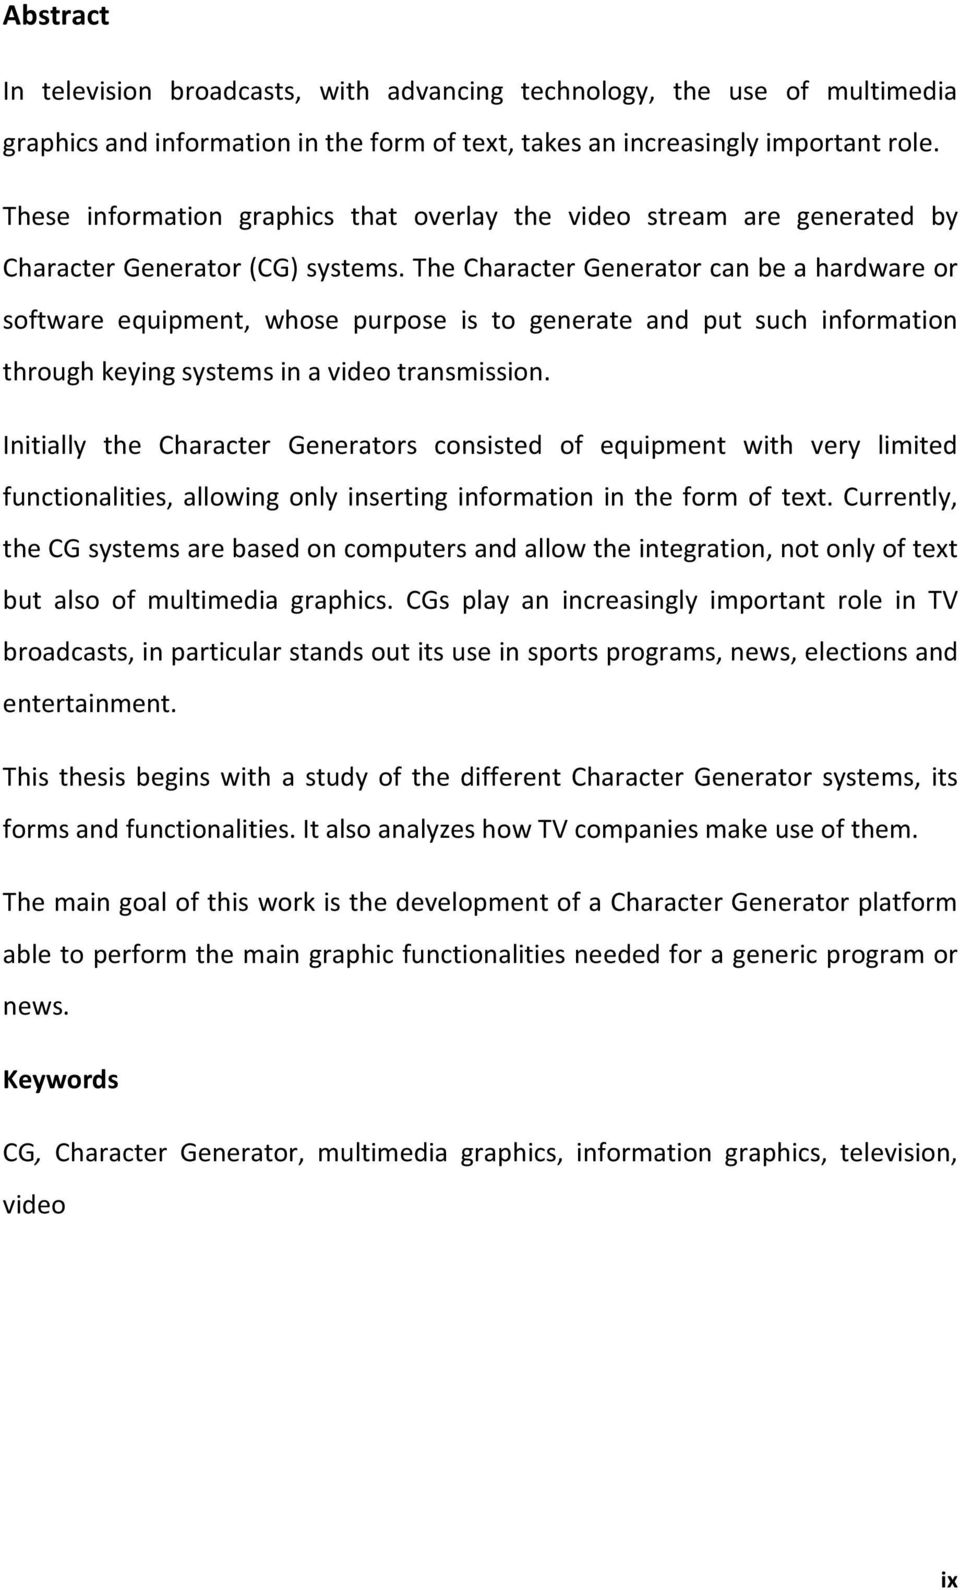 The Character Generator can be a hardware or software equipment, whose purpose is to generate and put such information through keying systems in a video transmission.